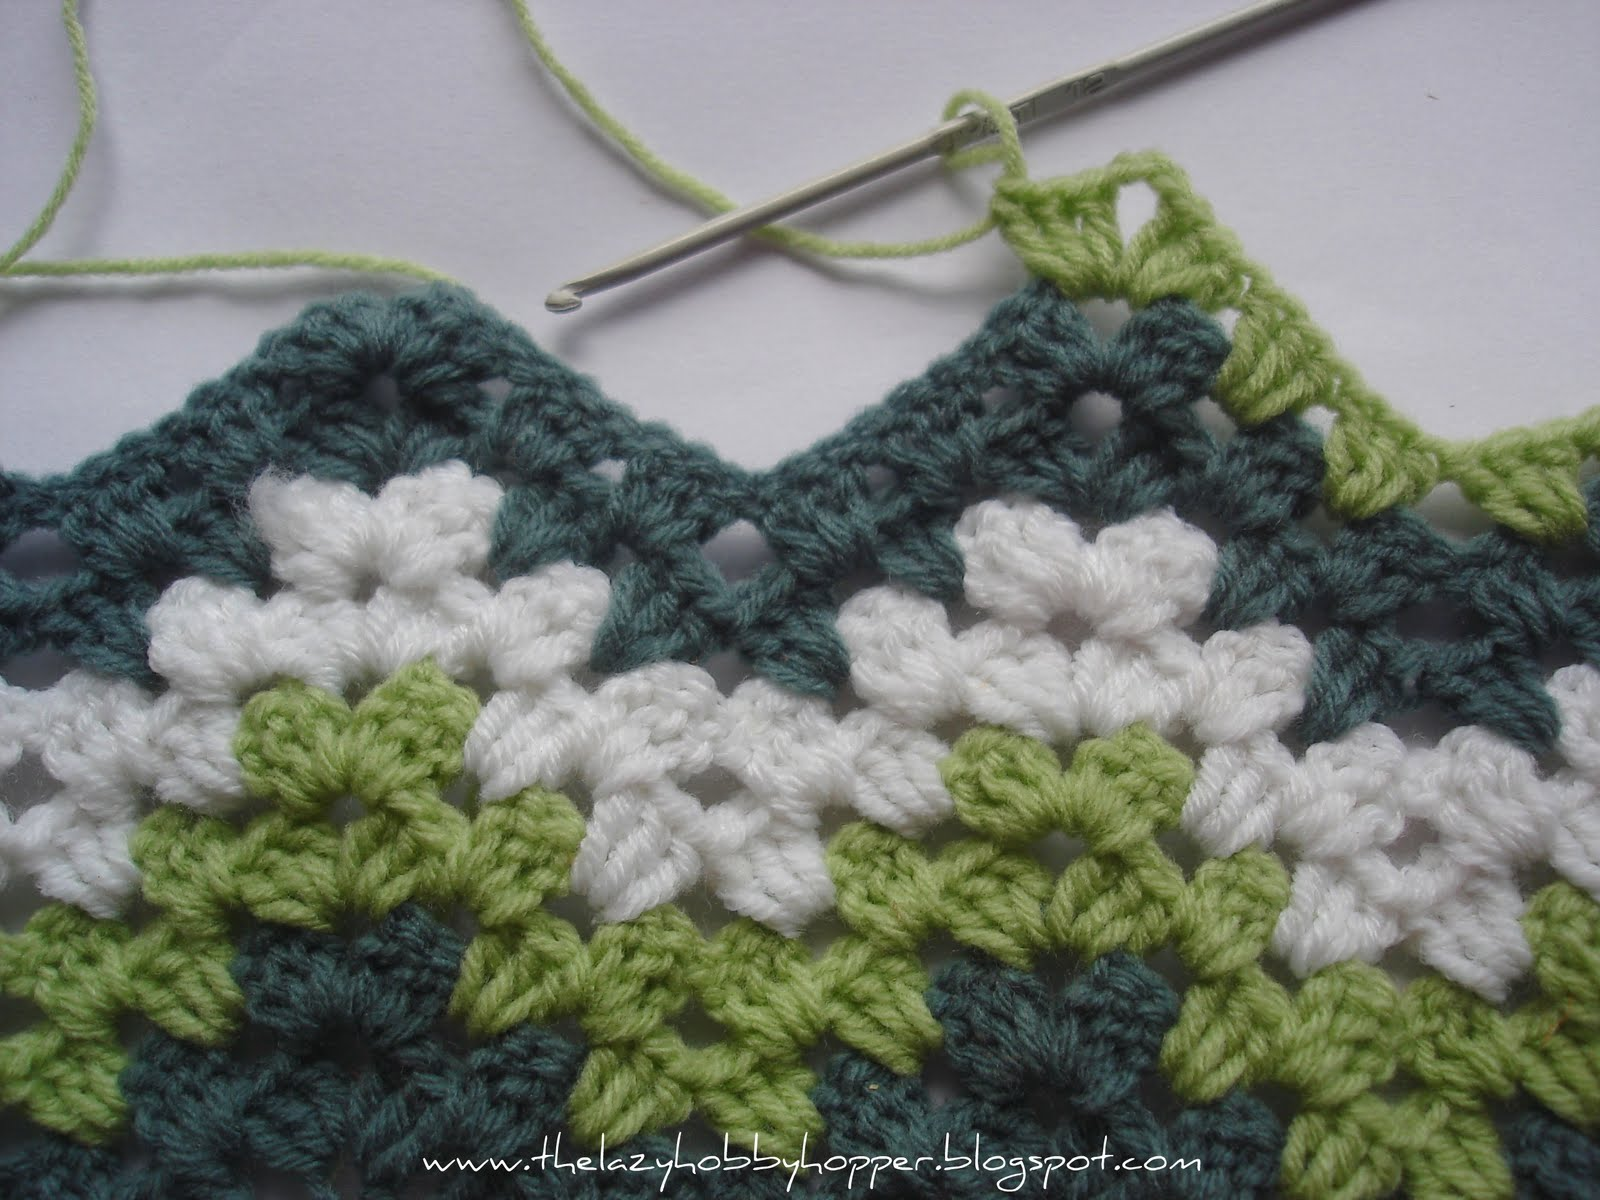 Granny Ripple Patterns: Two Looks, One Afghan - Stitch and Unwind